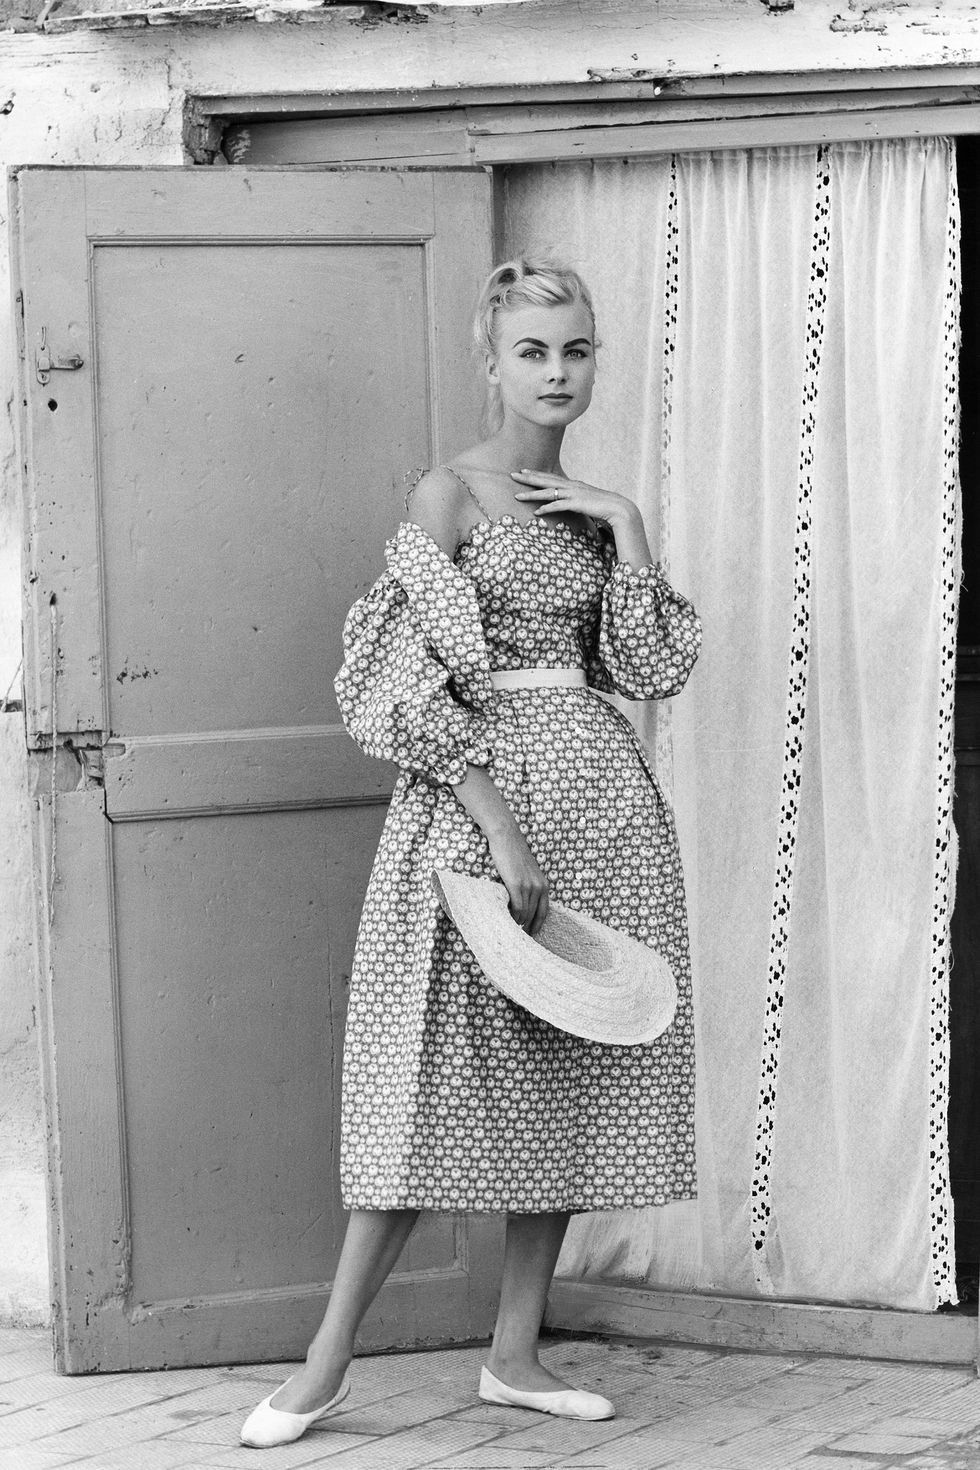 174b683c3f75 The Best Fashion Photos From The 1950s | mannequin 1950 | Fashion ...